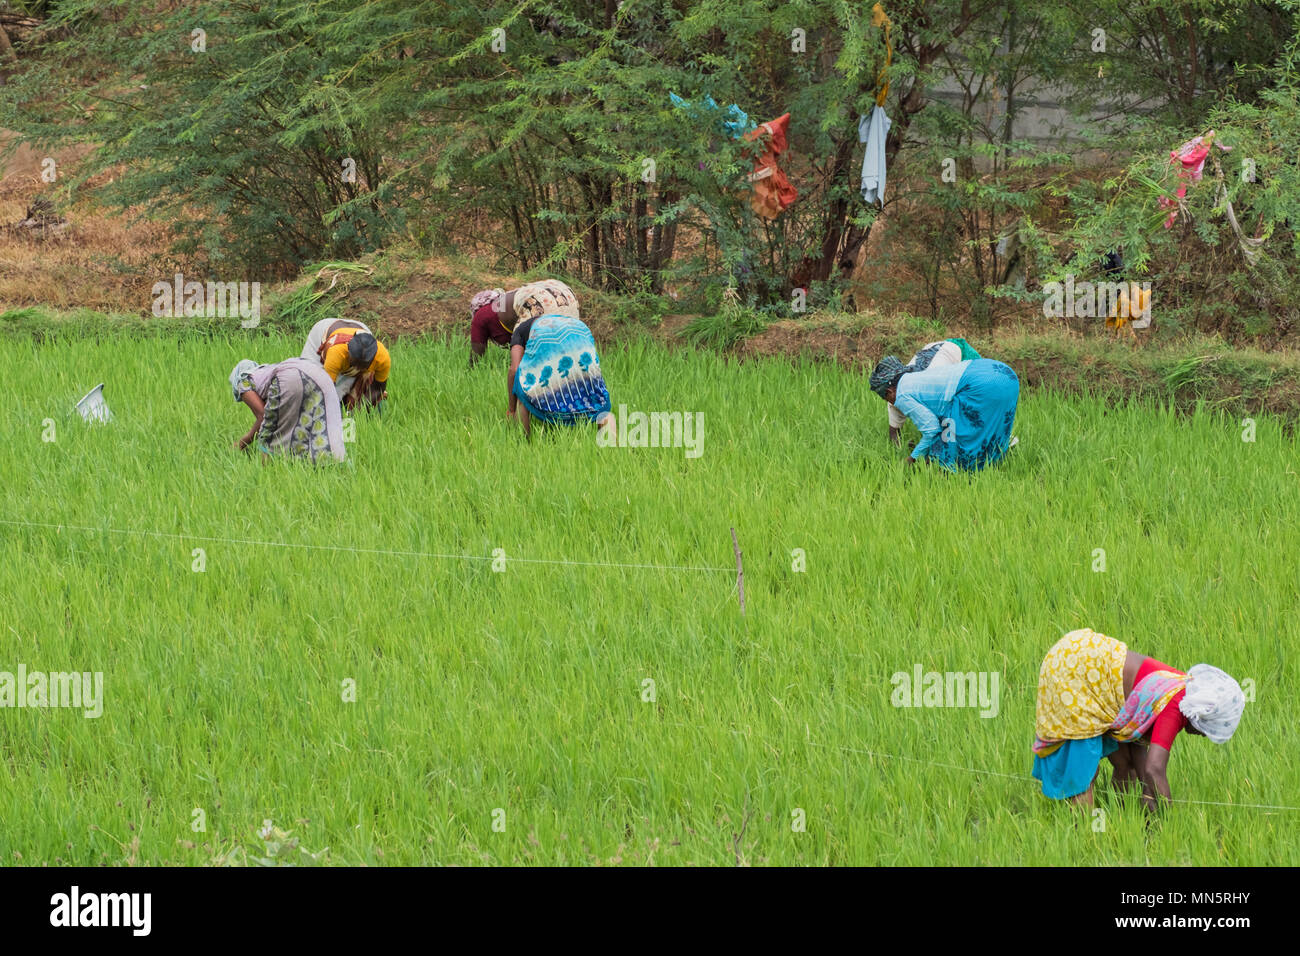 Thanjavur, India - March 13, 2018: Agricultural workers in a rice paddy in Tamil Nadu state - Stock Image